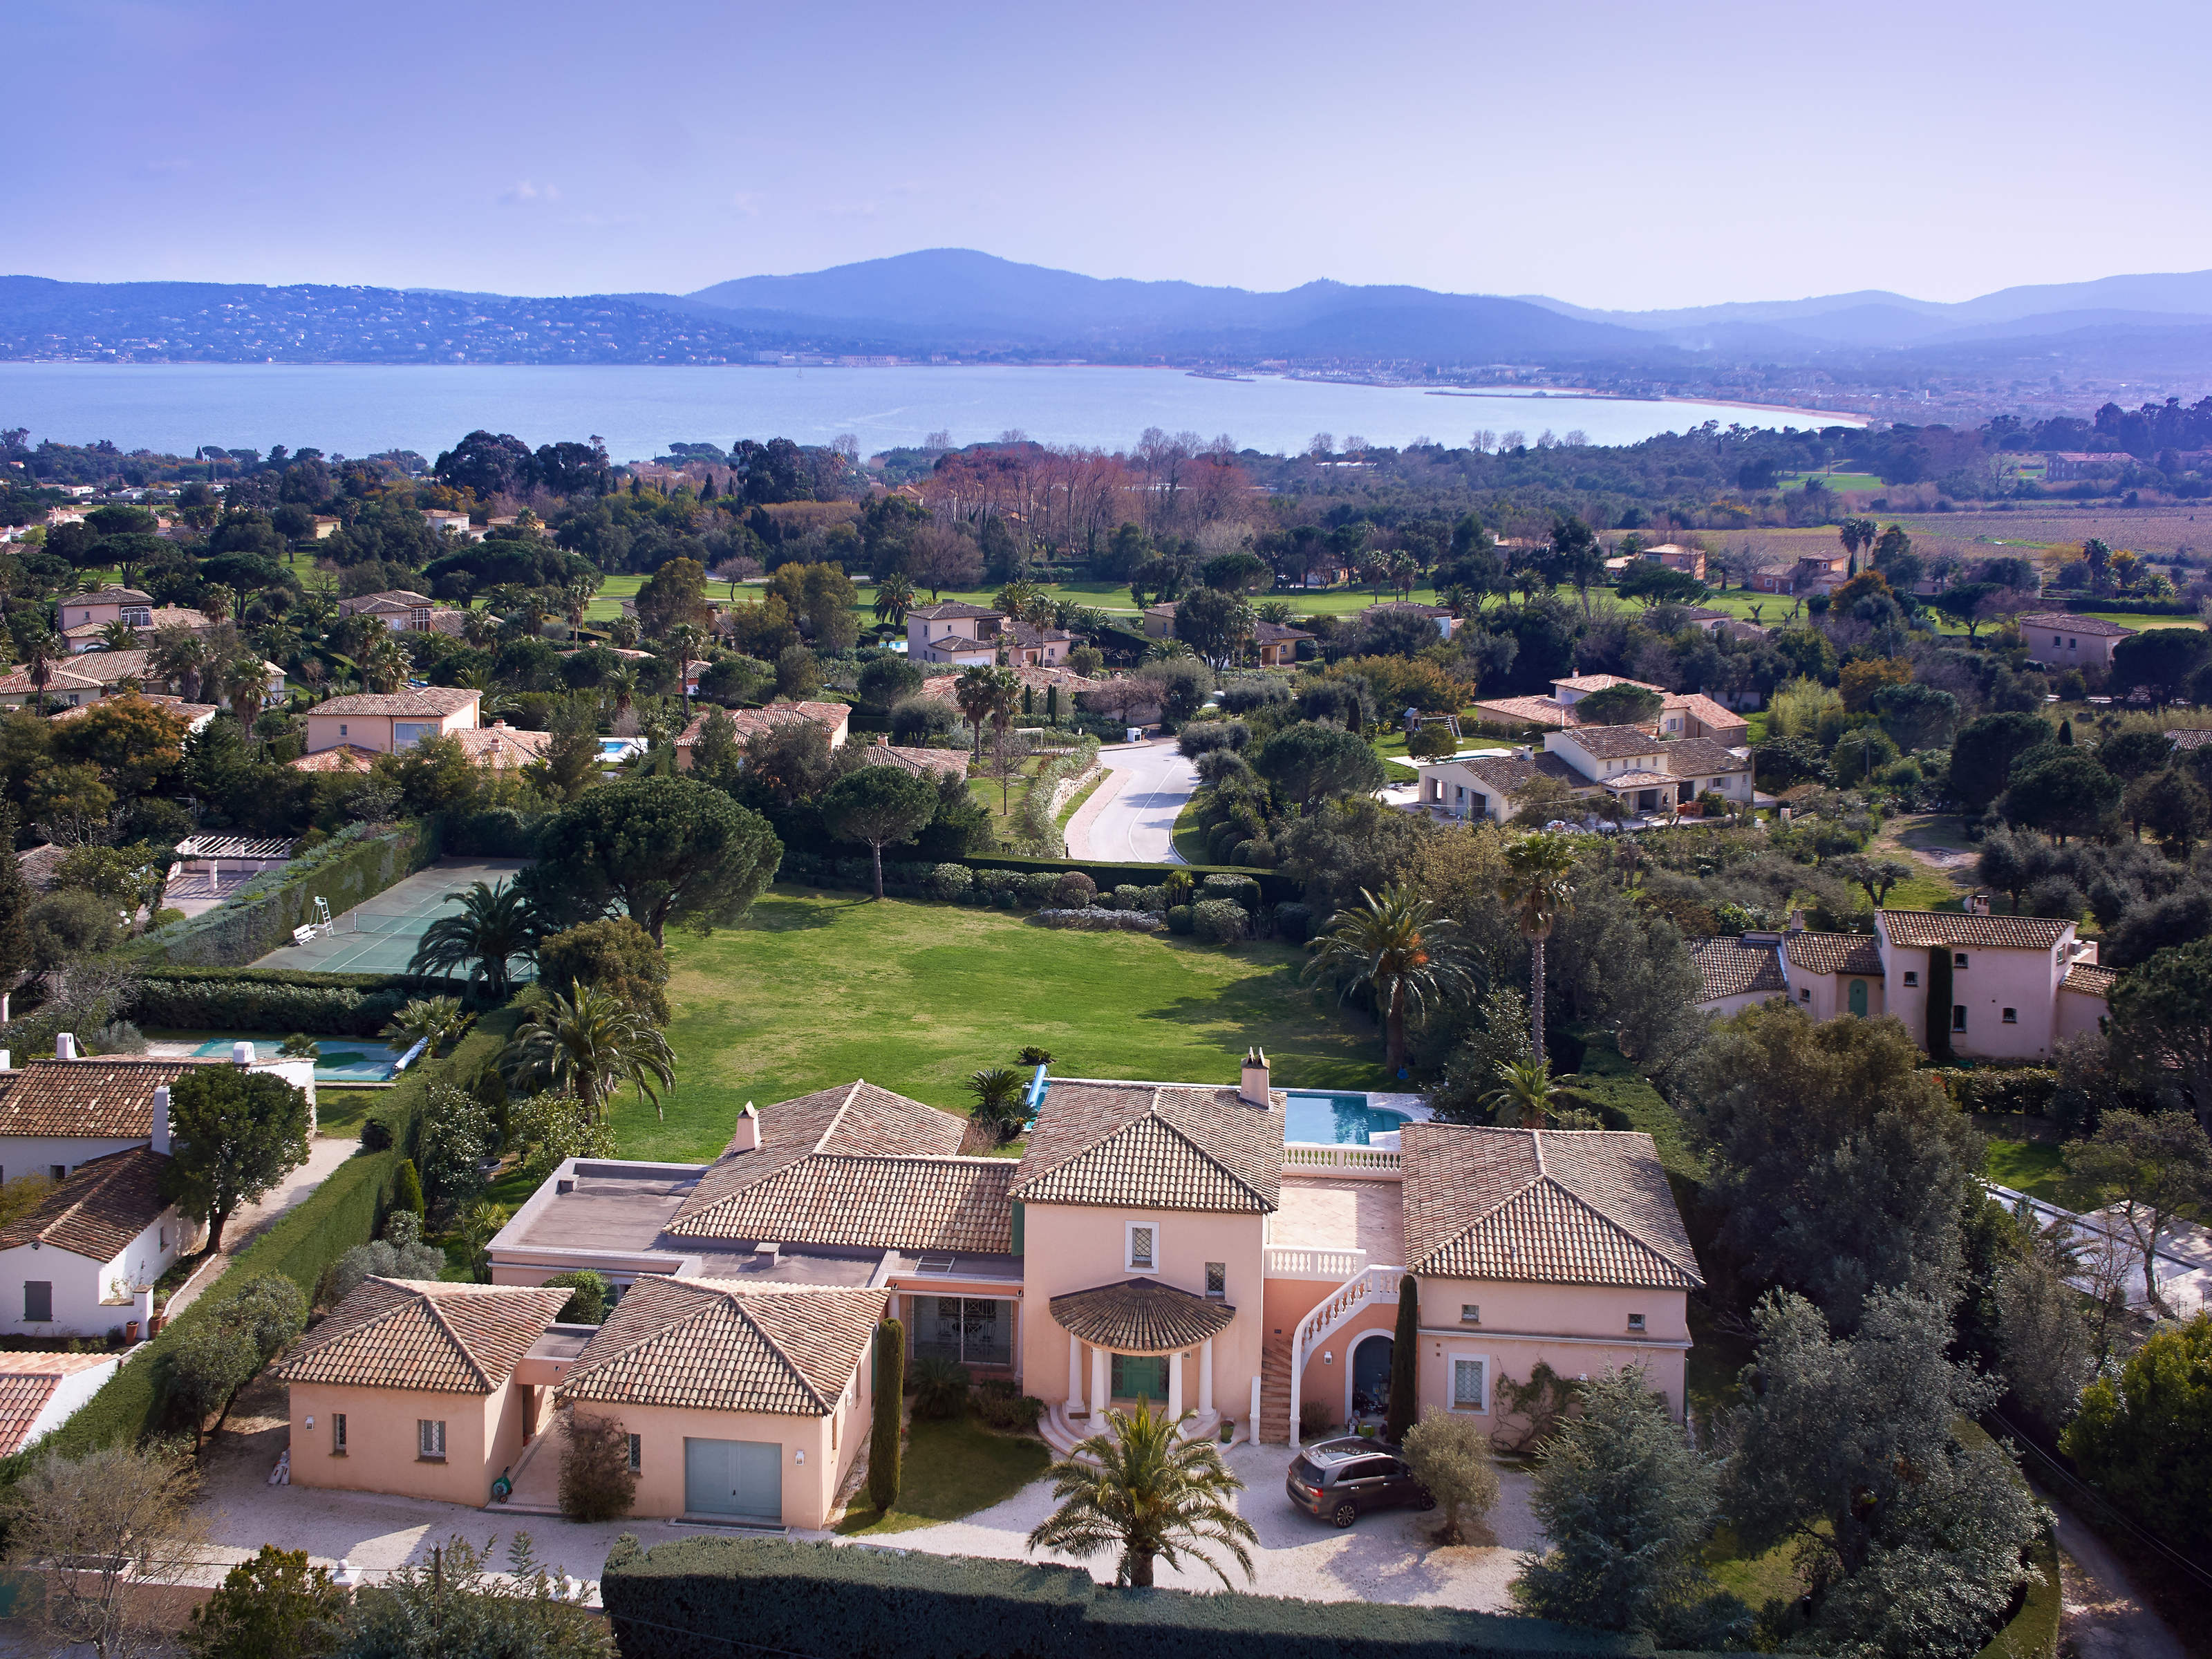 Single Family Home for Sale at Sea view for this magnificent property Grimaud, Provence-Alpes-Cote D'Azur 83310 France